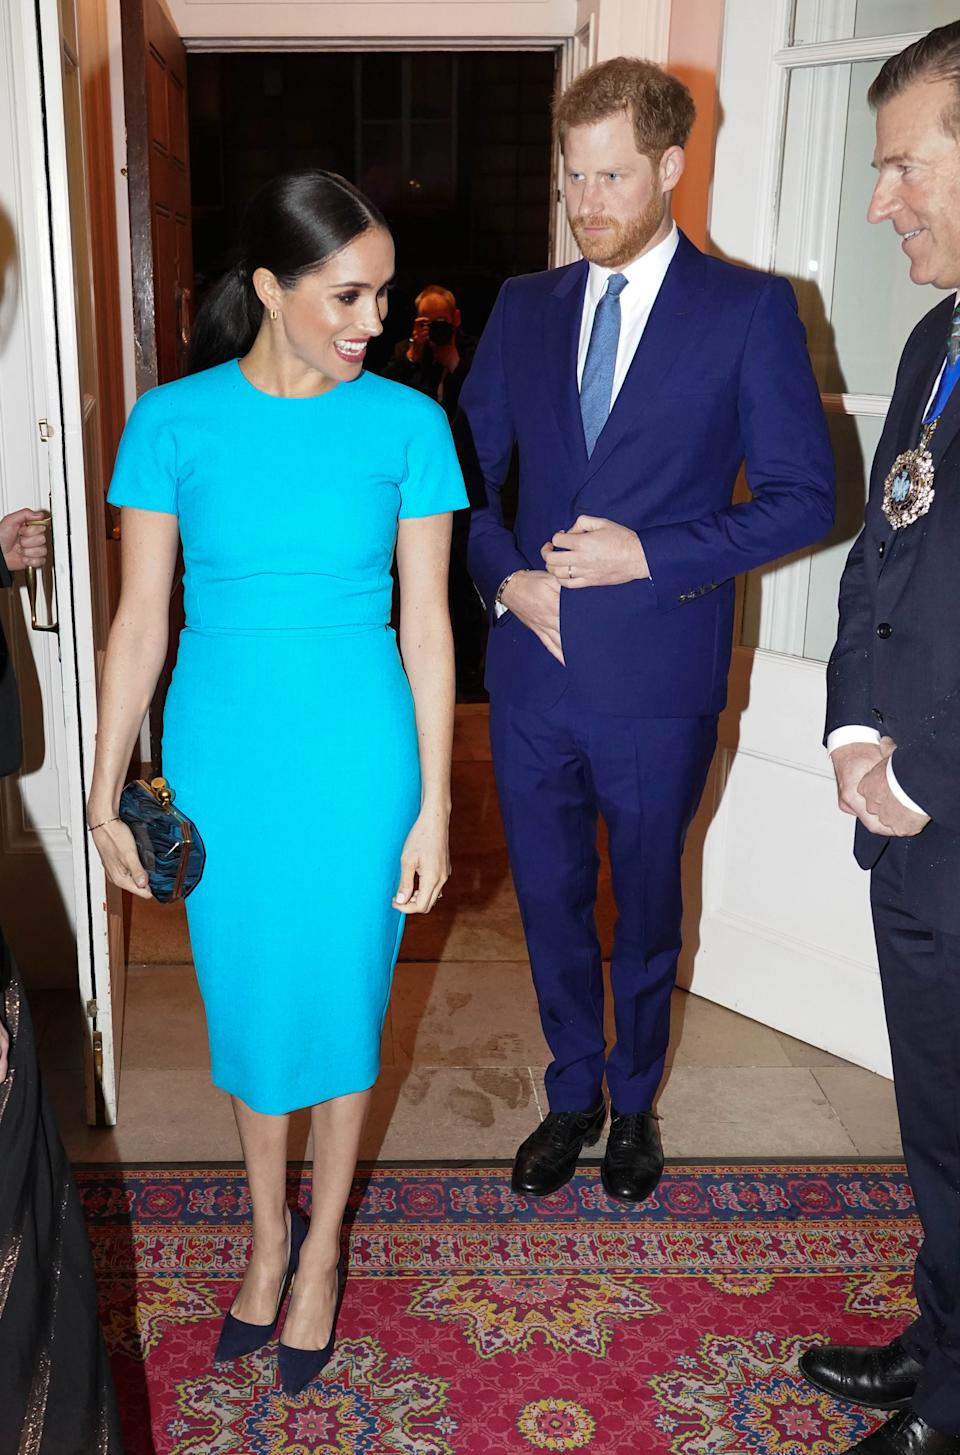 LONDON, ENGLAND - MARCH 05: Prince Harry, Duke of Sussex and Meghan, Duchess of Sussex attend the annual Endeavour Fund Awards at Mansion House on March 5, 2020 in London, England. Their Royal Highnesses will celebrate the achievements of wounded, injured and sick servicemen and women who have taken part in remarkable sporting and adventure challenges over the last year. (Photo by Paul Edwards - WPA Pool/Getty Images)